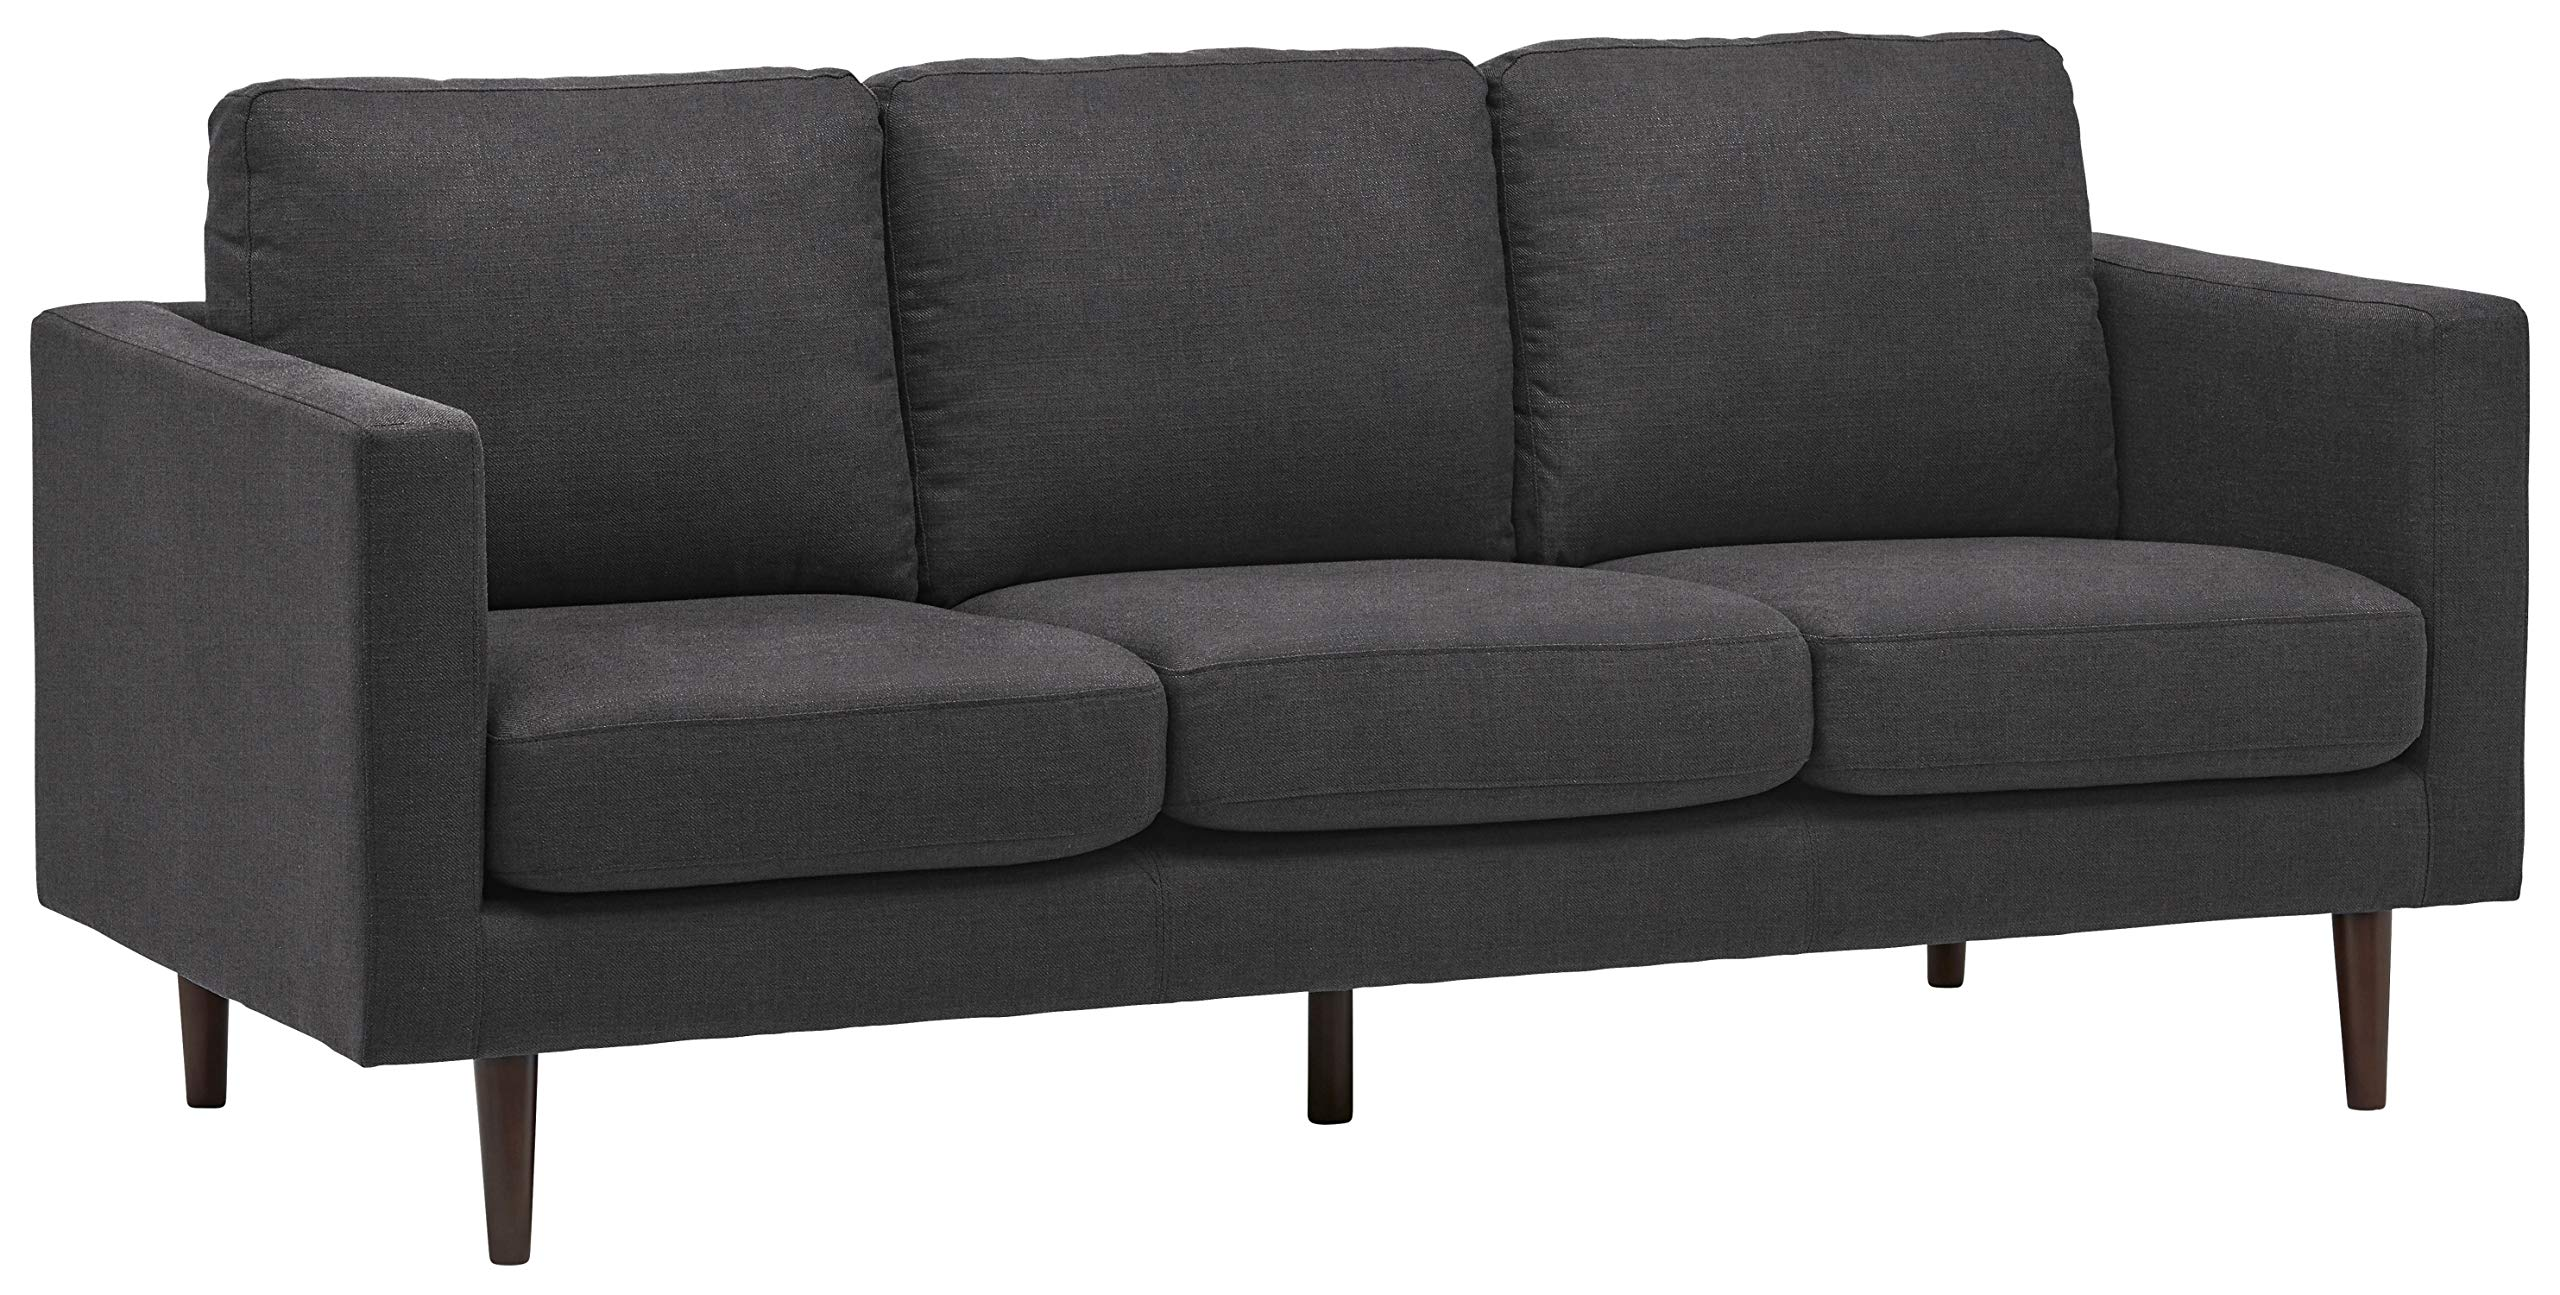 Rivet Revolve Modern Upholstered Sofa with Tapered Legs, 79.9''W, Storm Grey by Rivet